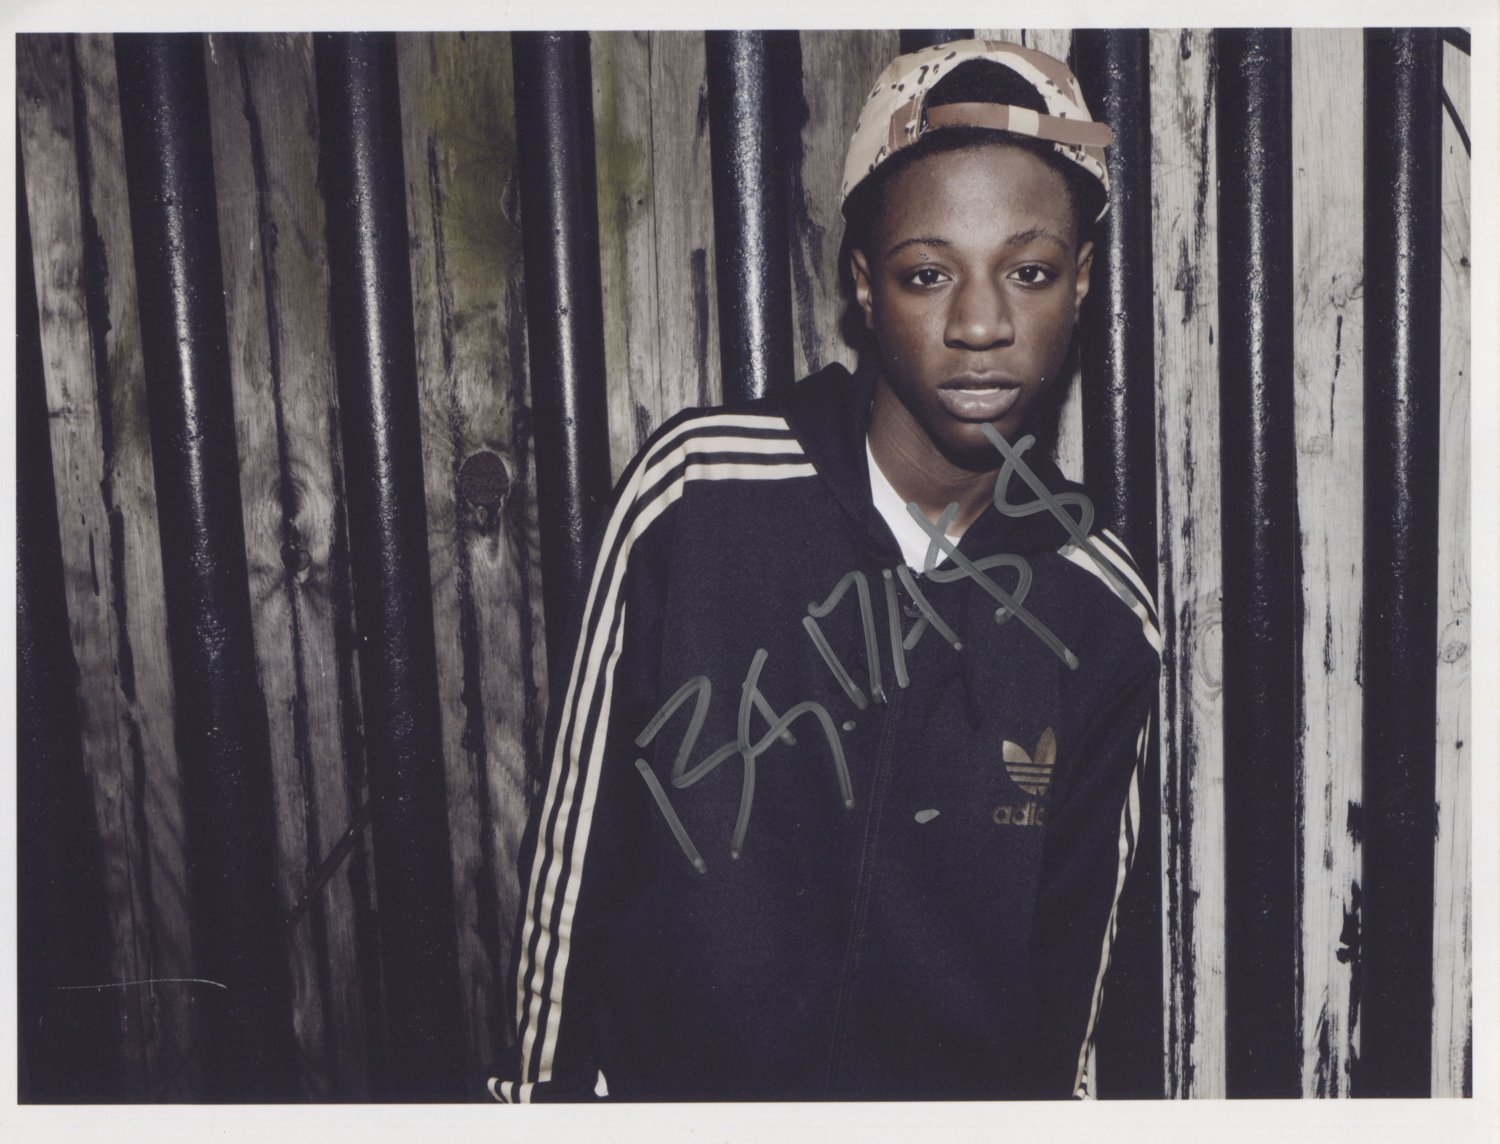 Joey Badass SIGNED Photo + Certificate Of Authentication 100% Genuine